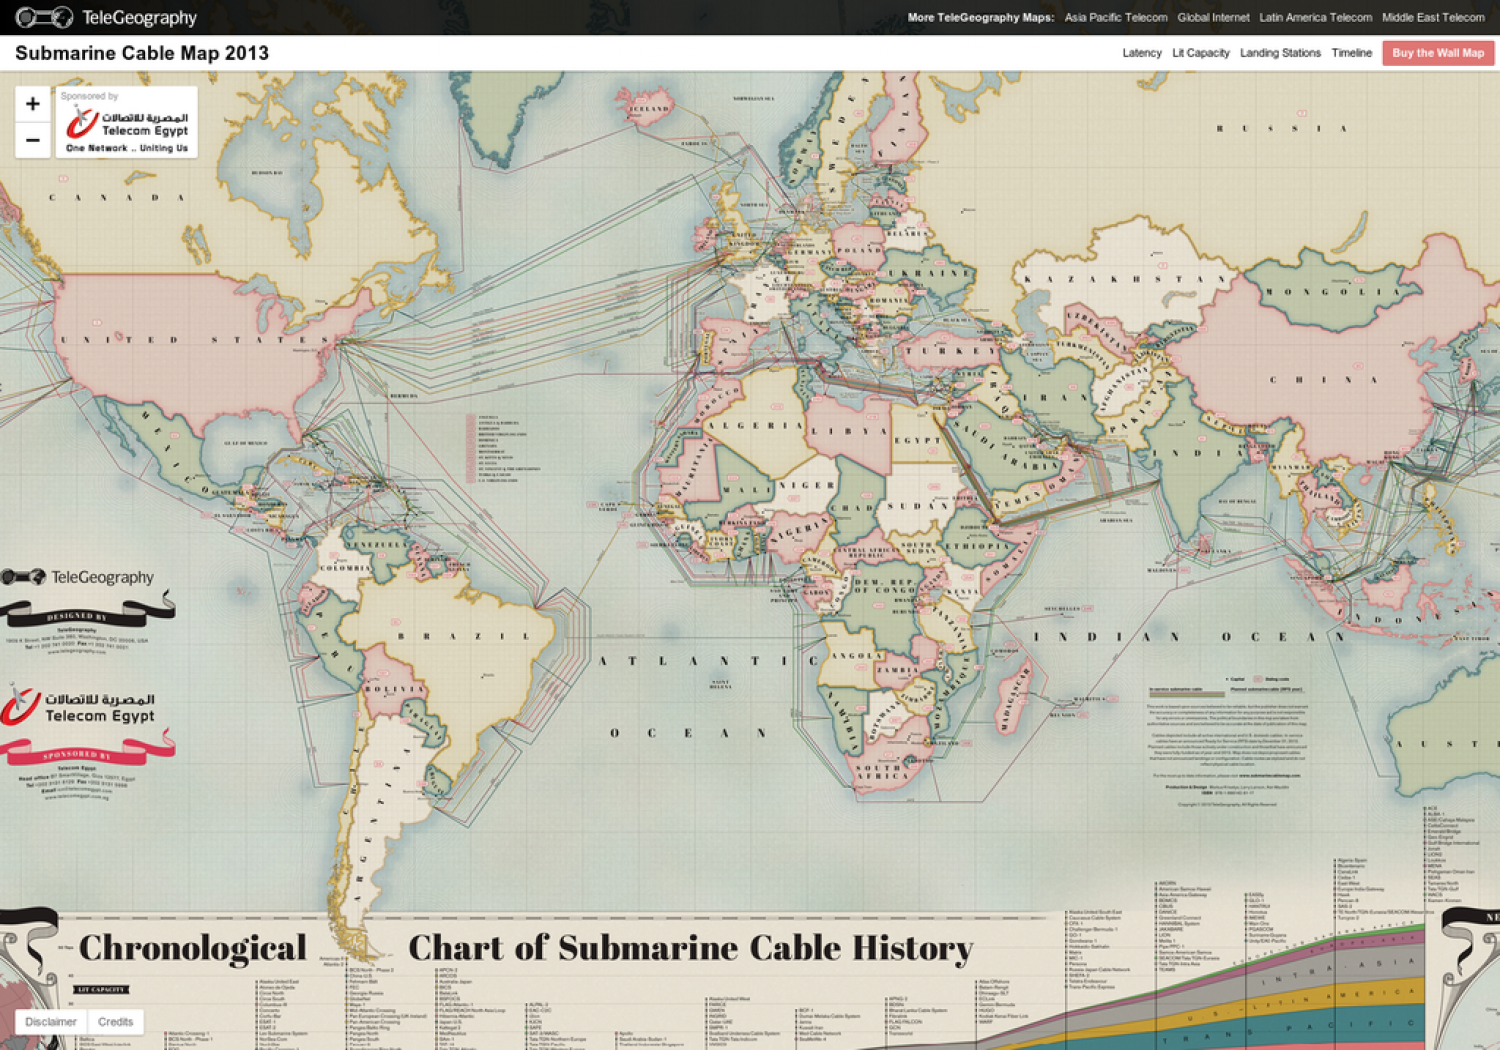 Submarine Cable Map 2013 | Visual.ly on underwater communication cables, eastward of sea routes map, underwater fiber optic cables, underwater pacific ocean map, pse kv transmission line map, napoli map,